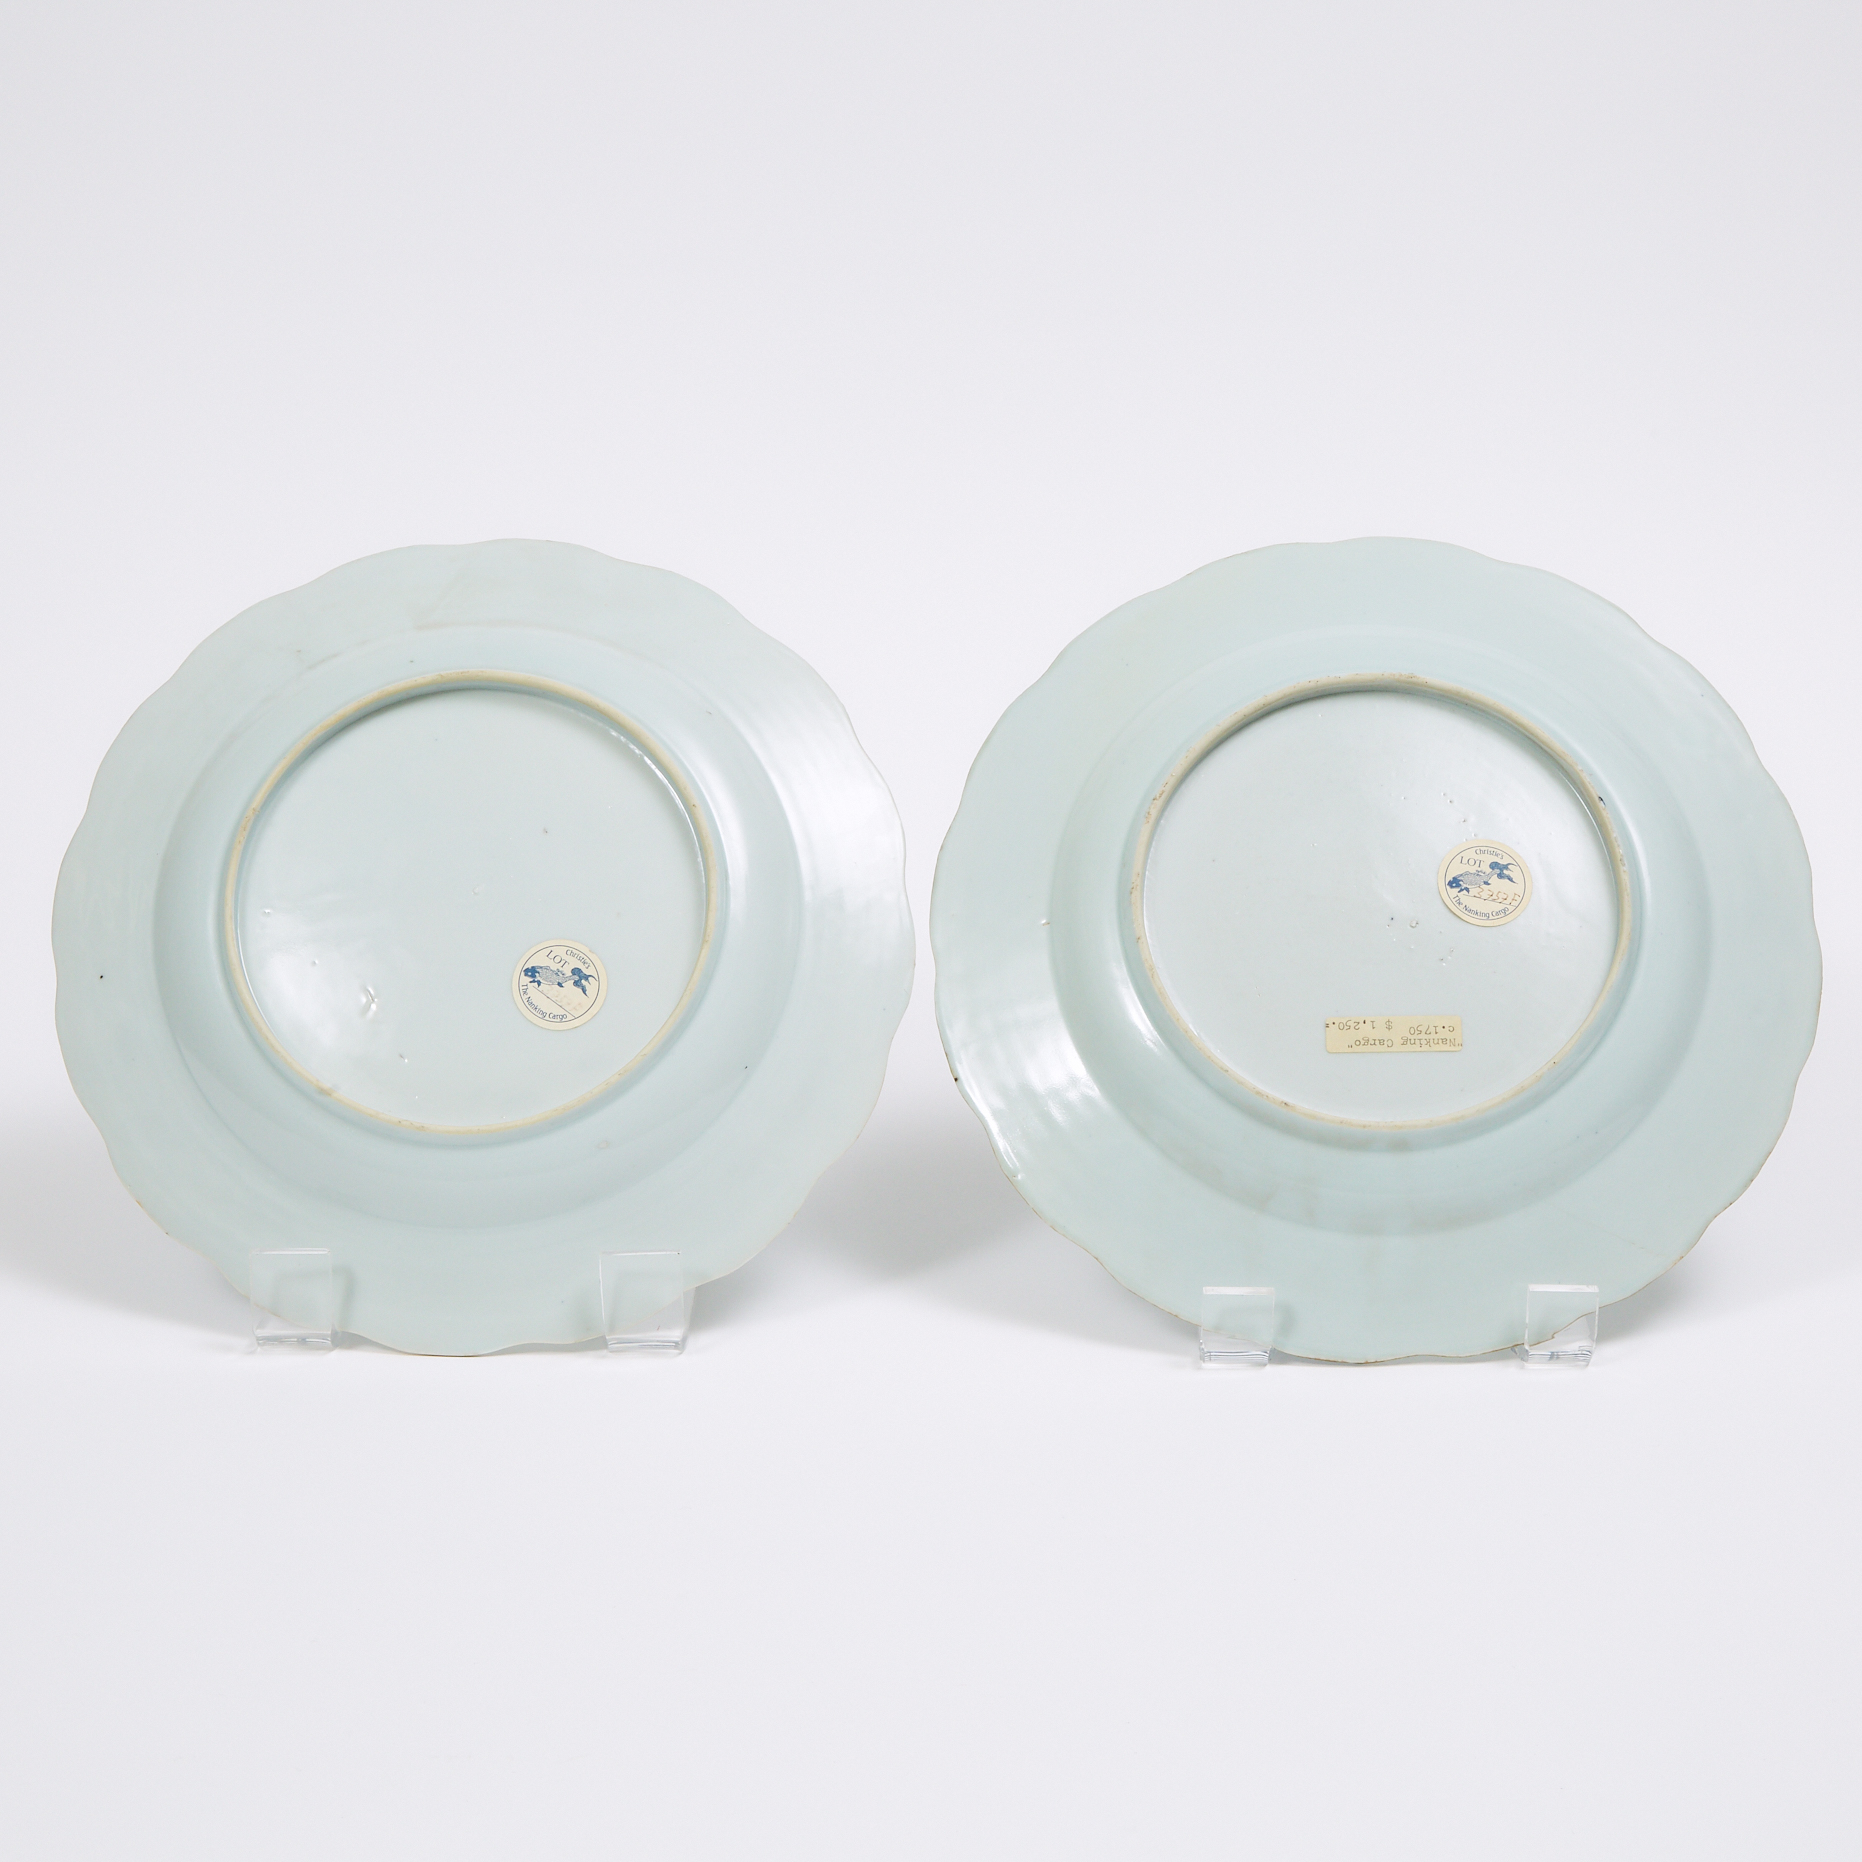 A Pair of 'Three Pavillions' Pattern Lobed Dishes from the Nanking Cargo, Qianlong Period, Circa 1750